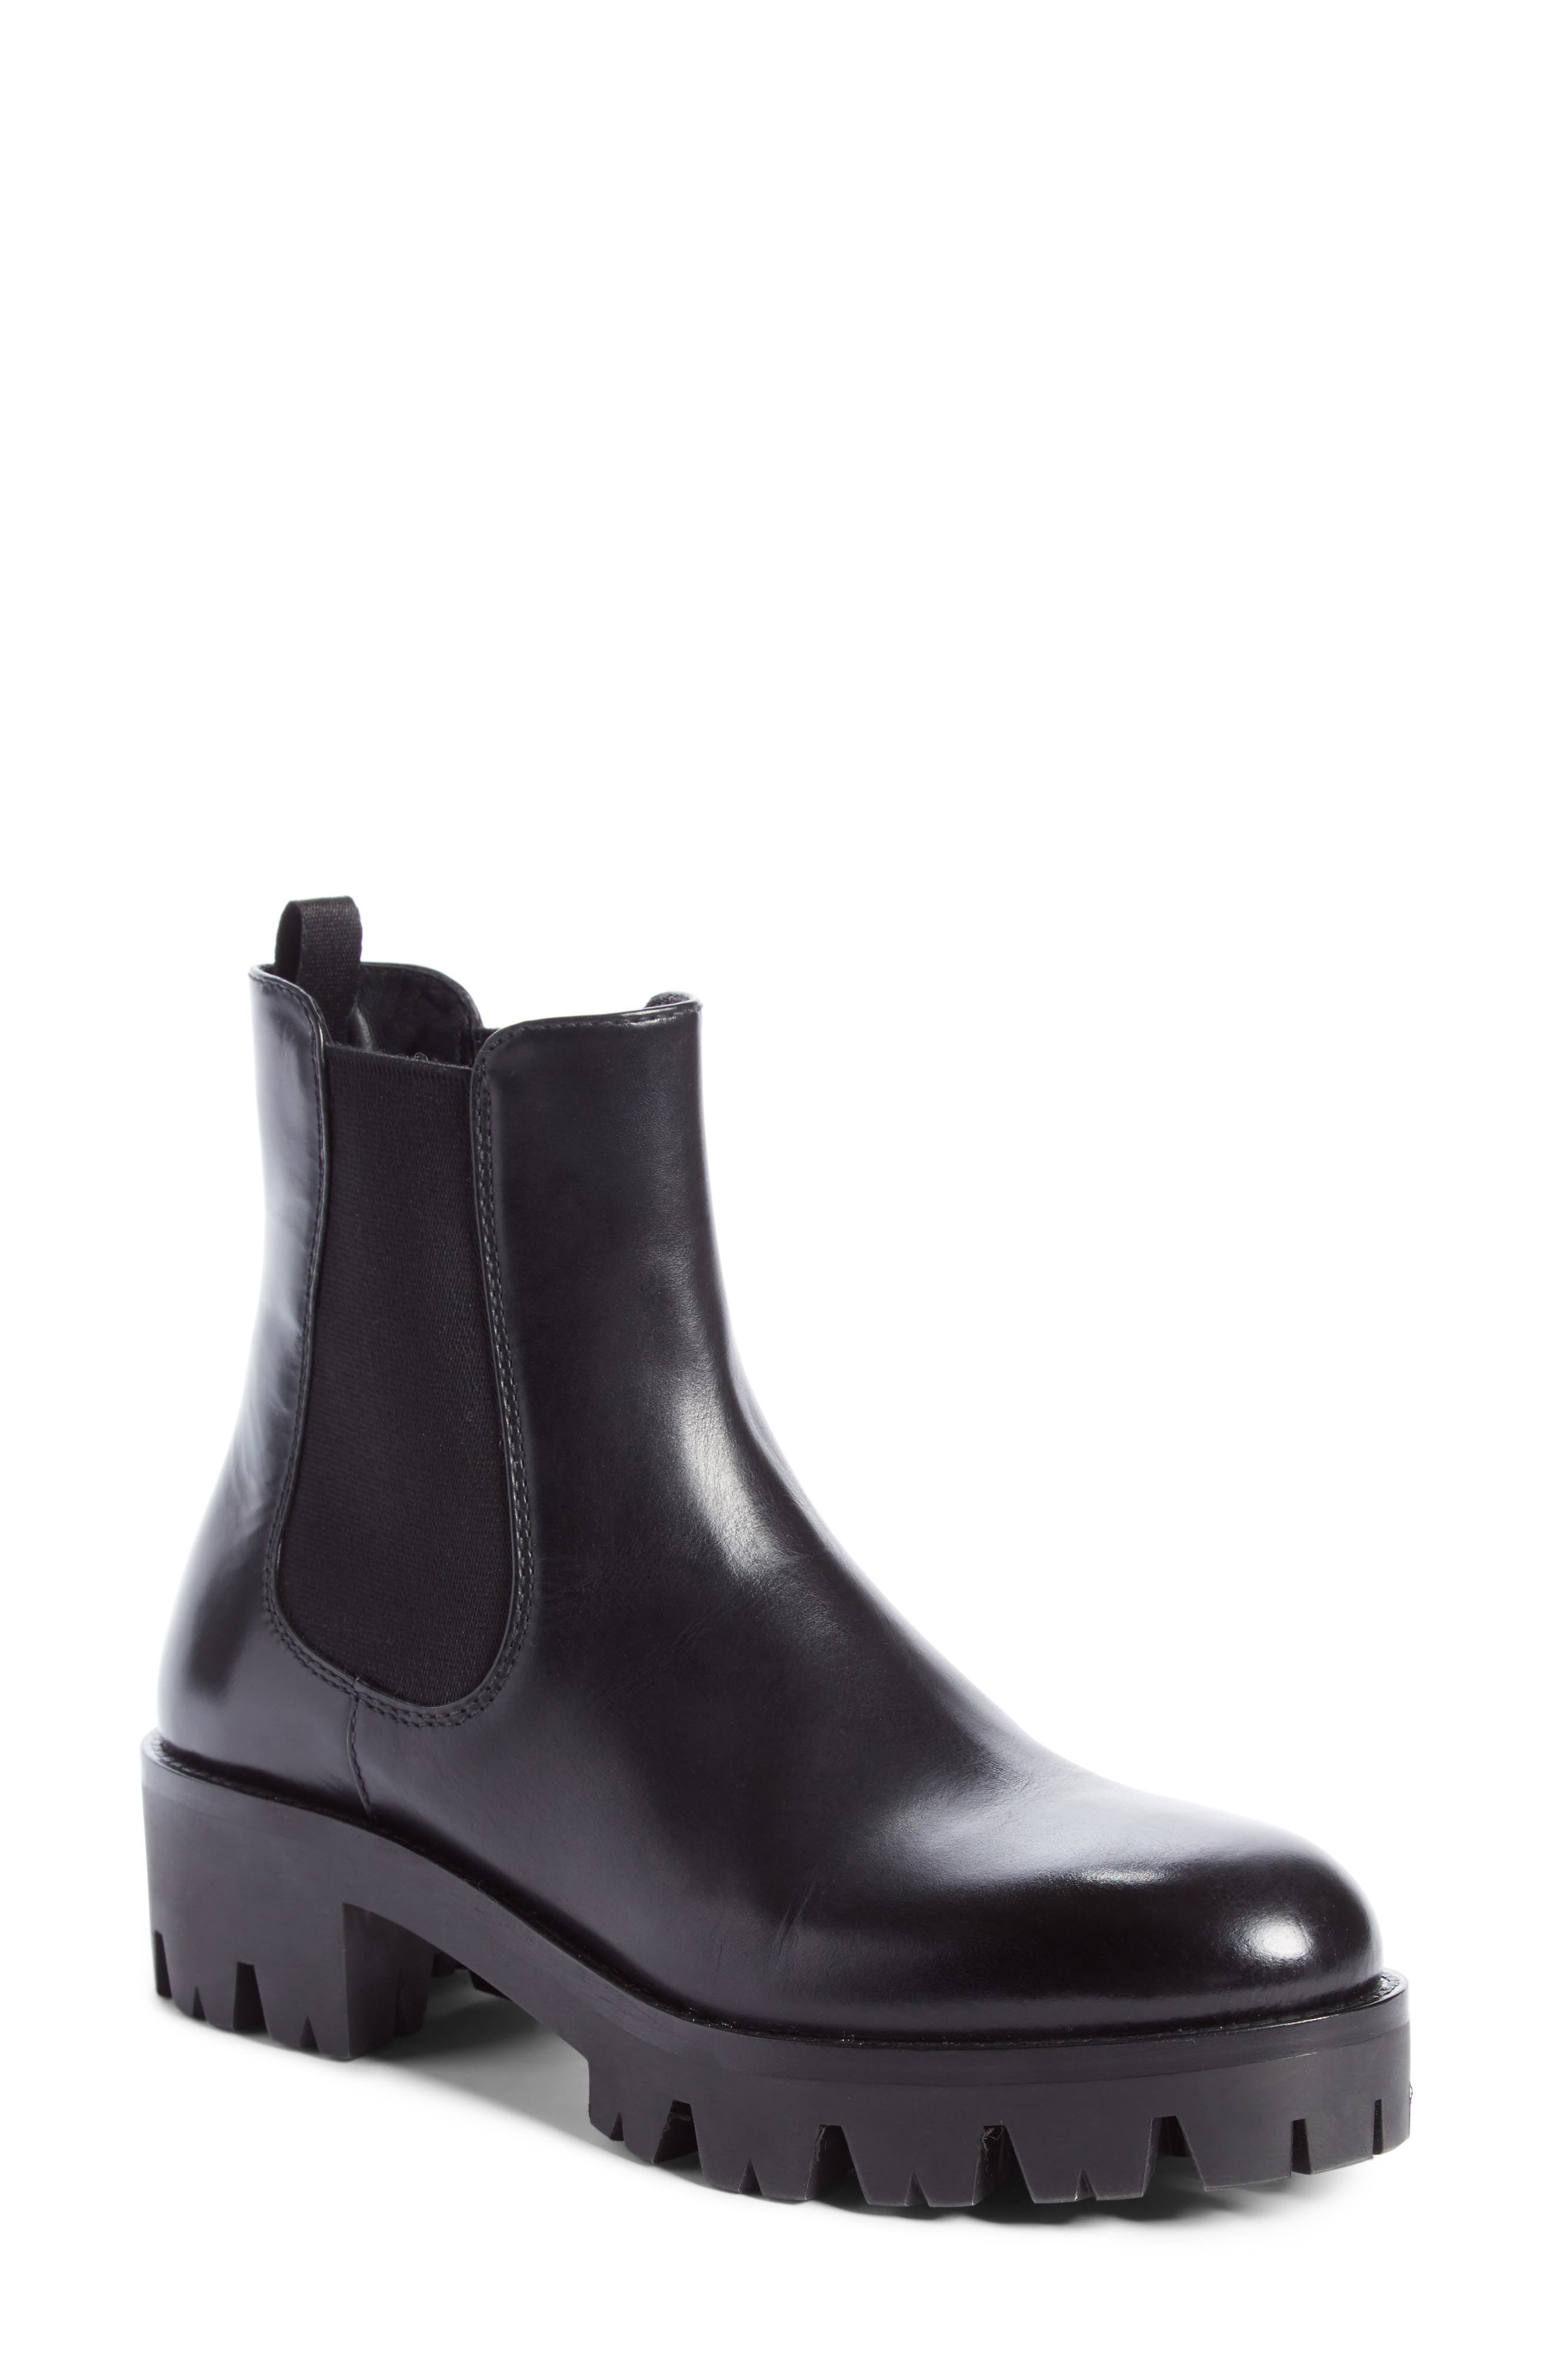 Alternate Image 1 Selected - Prada Chelsea Boot (Women)